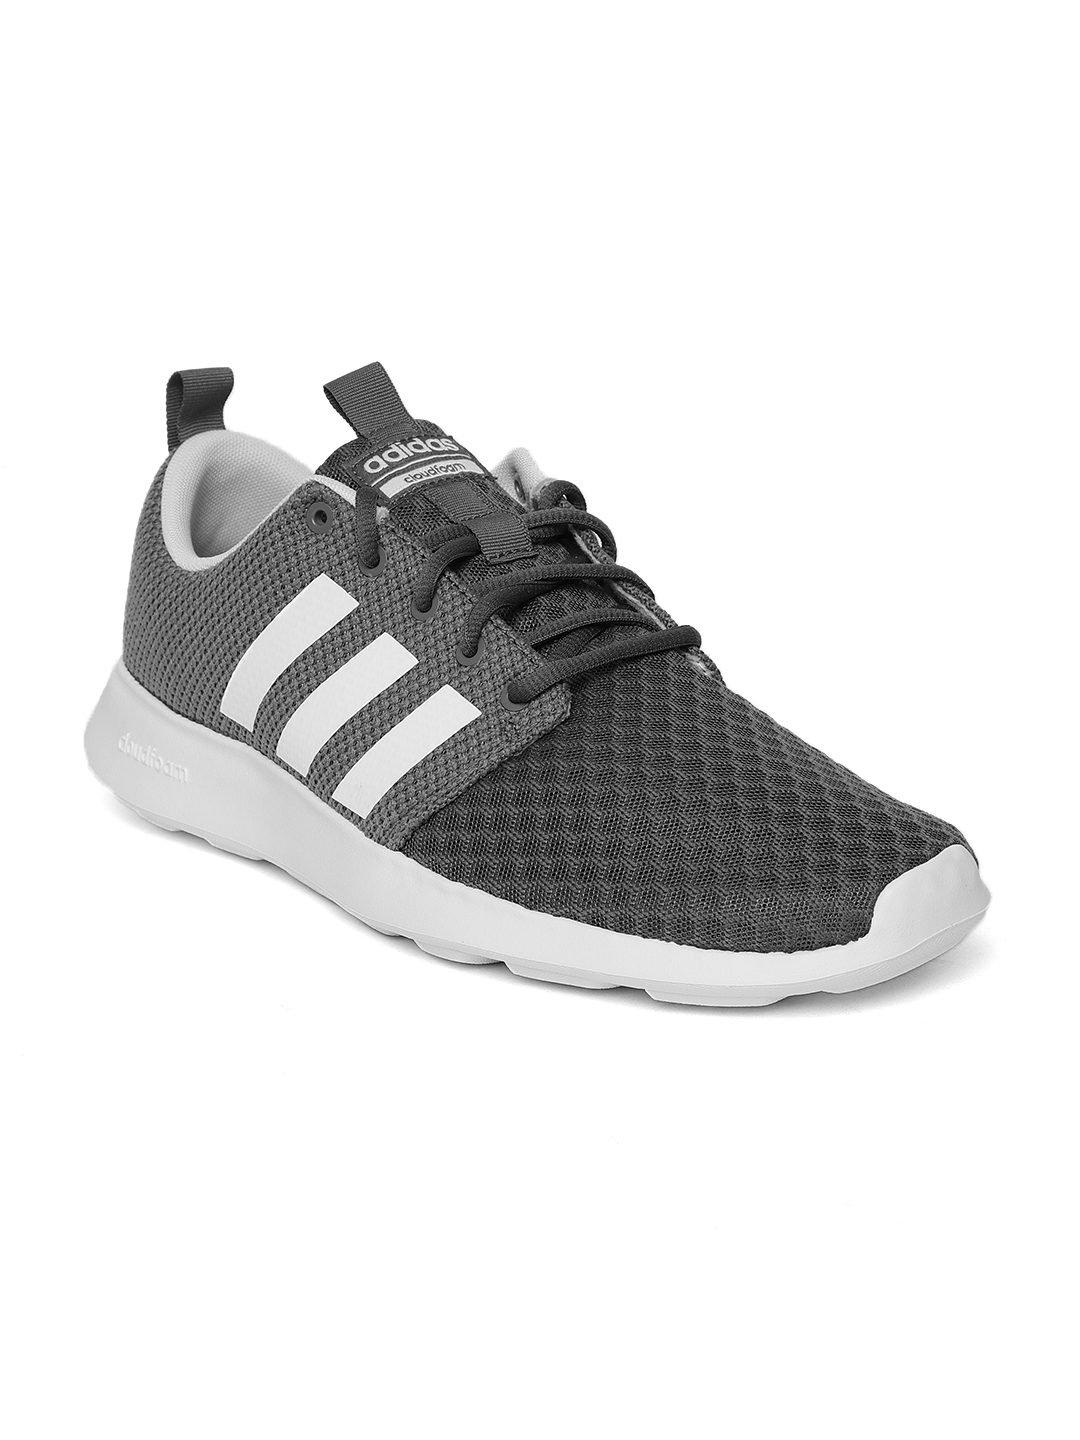 great fit quite nice cheapest price ADIDAS Men Grey Cloudfoam Swift Racer Running Shoes